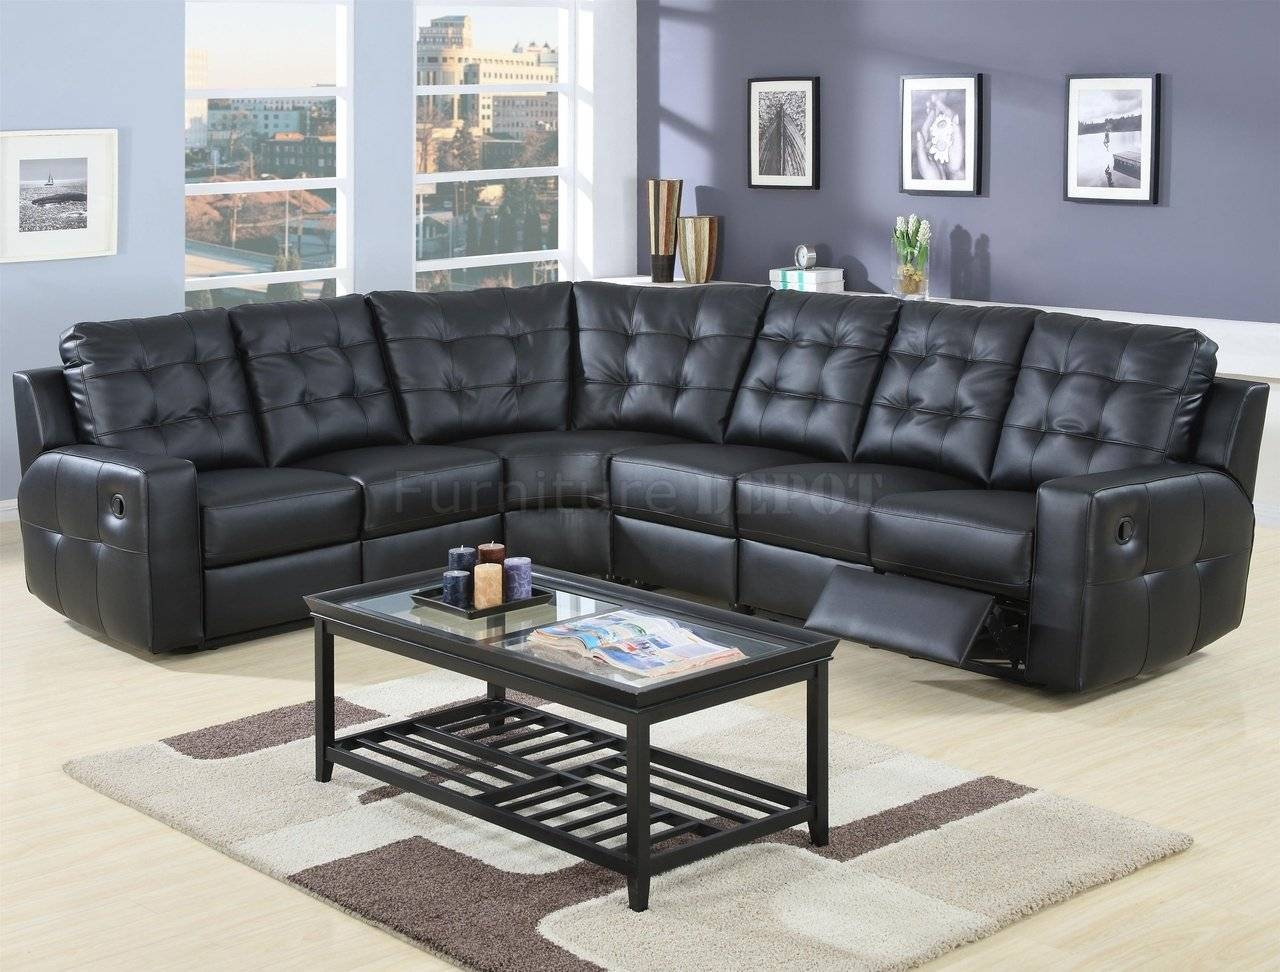 Furniture: Create Your Living Room With Cool Sectional Recliner within Modern Reclining Leather Sofas (Image 6 of 30)